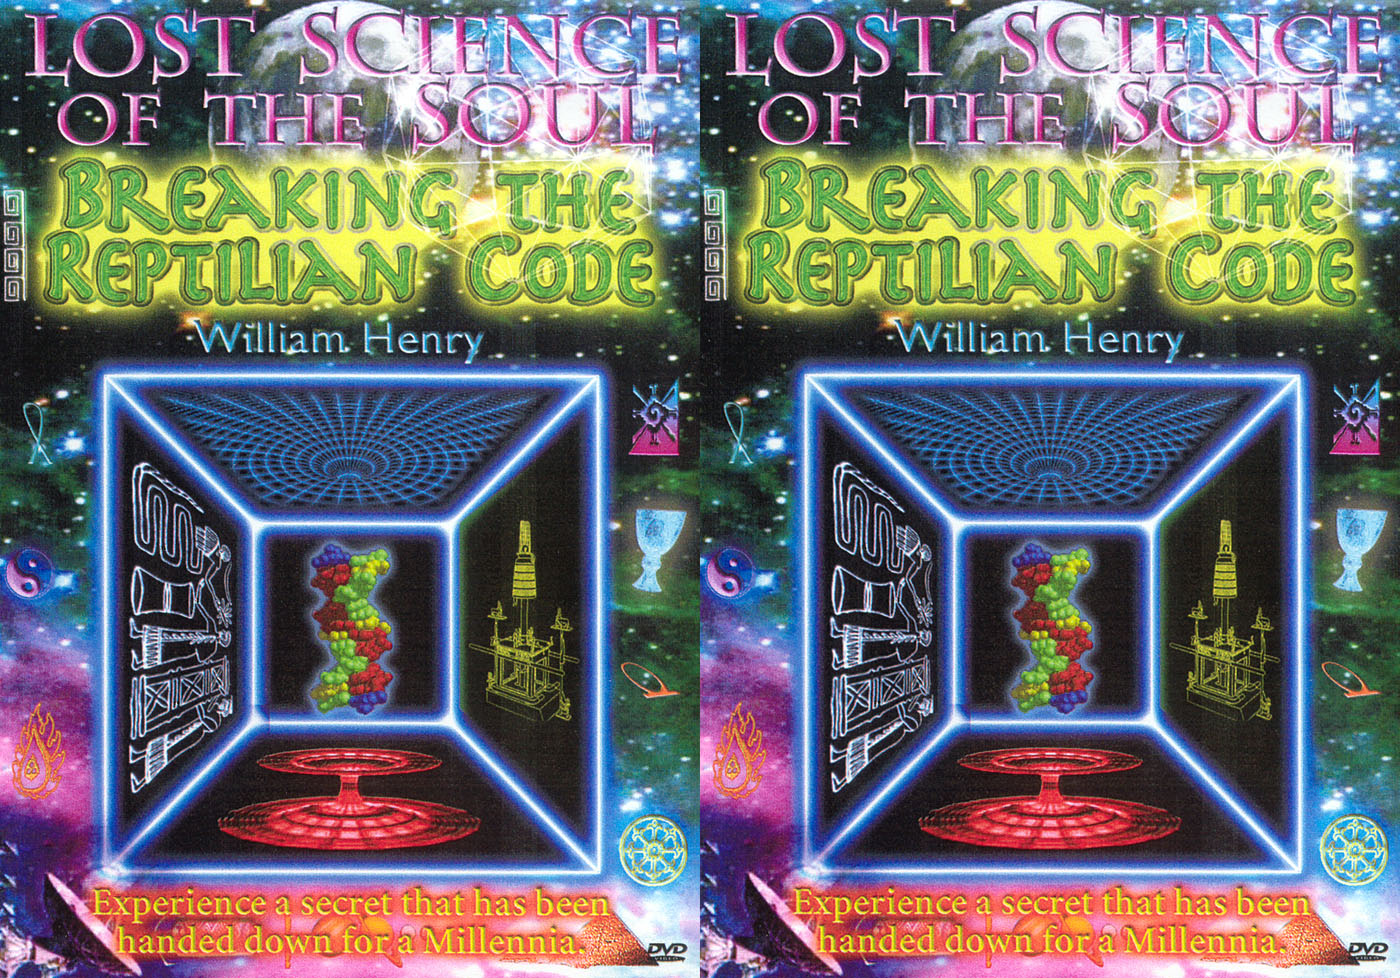 Lost Science of the Soul: Breaking the Reptilian Code